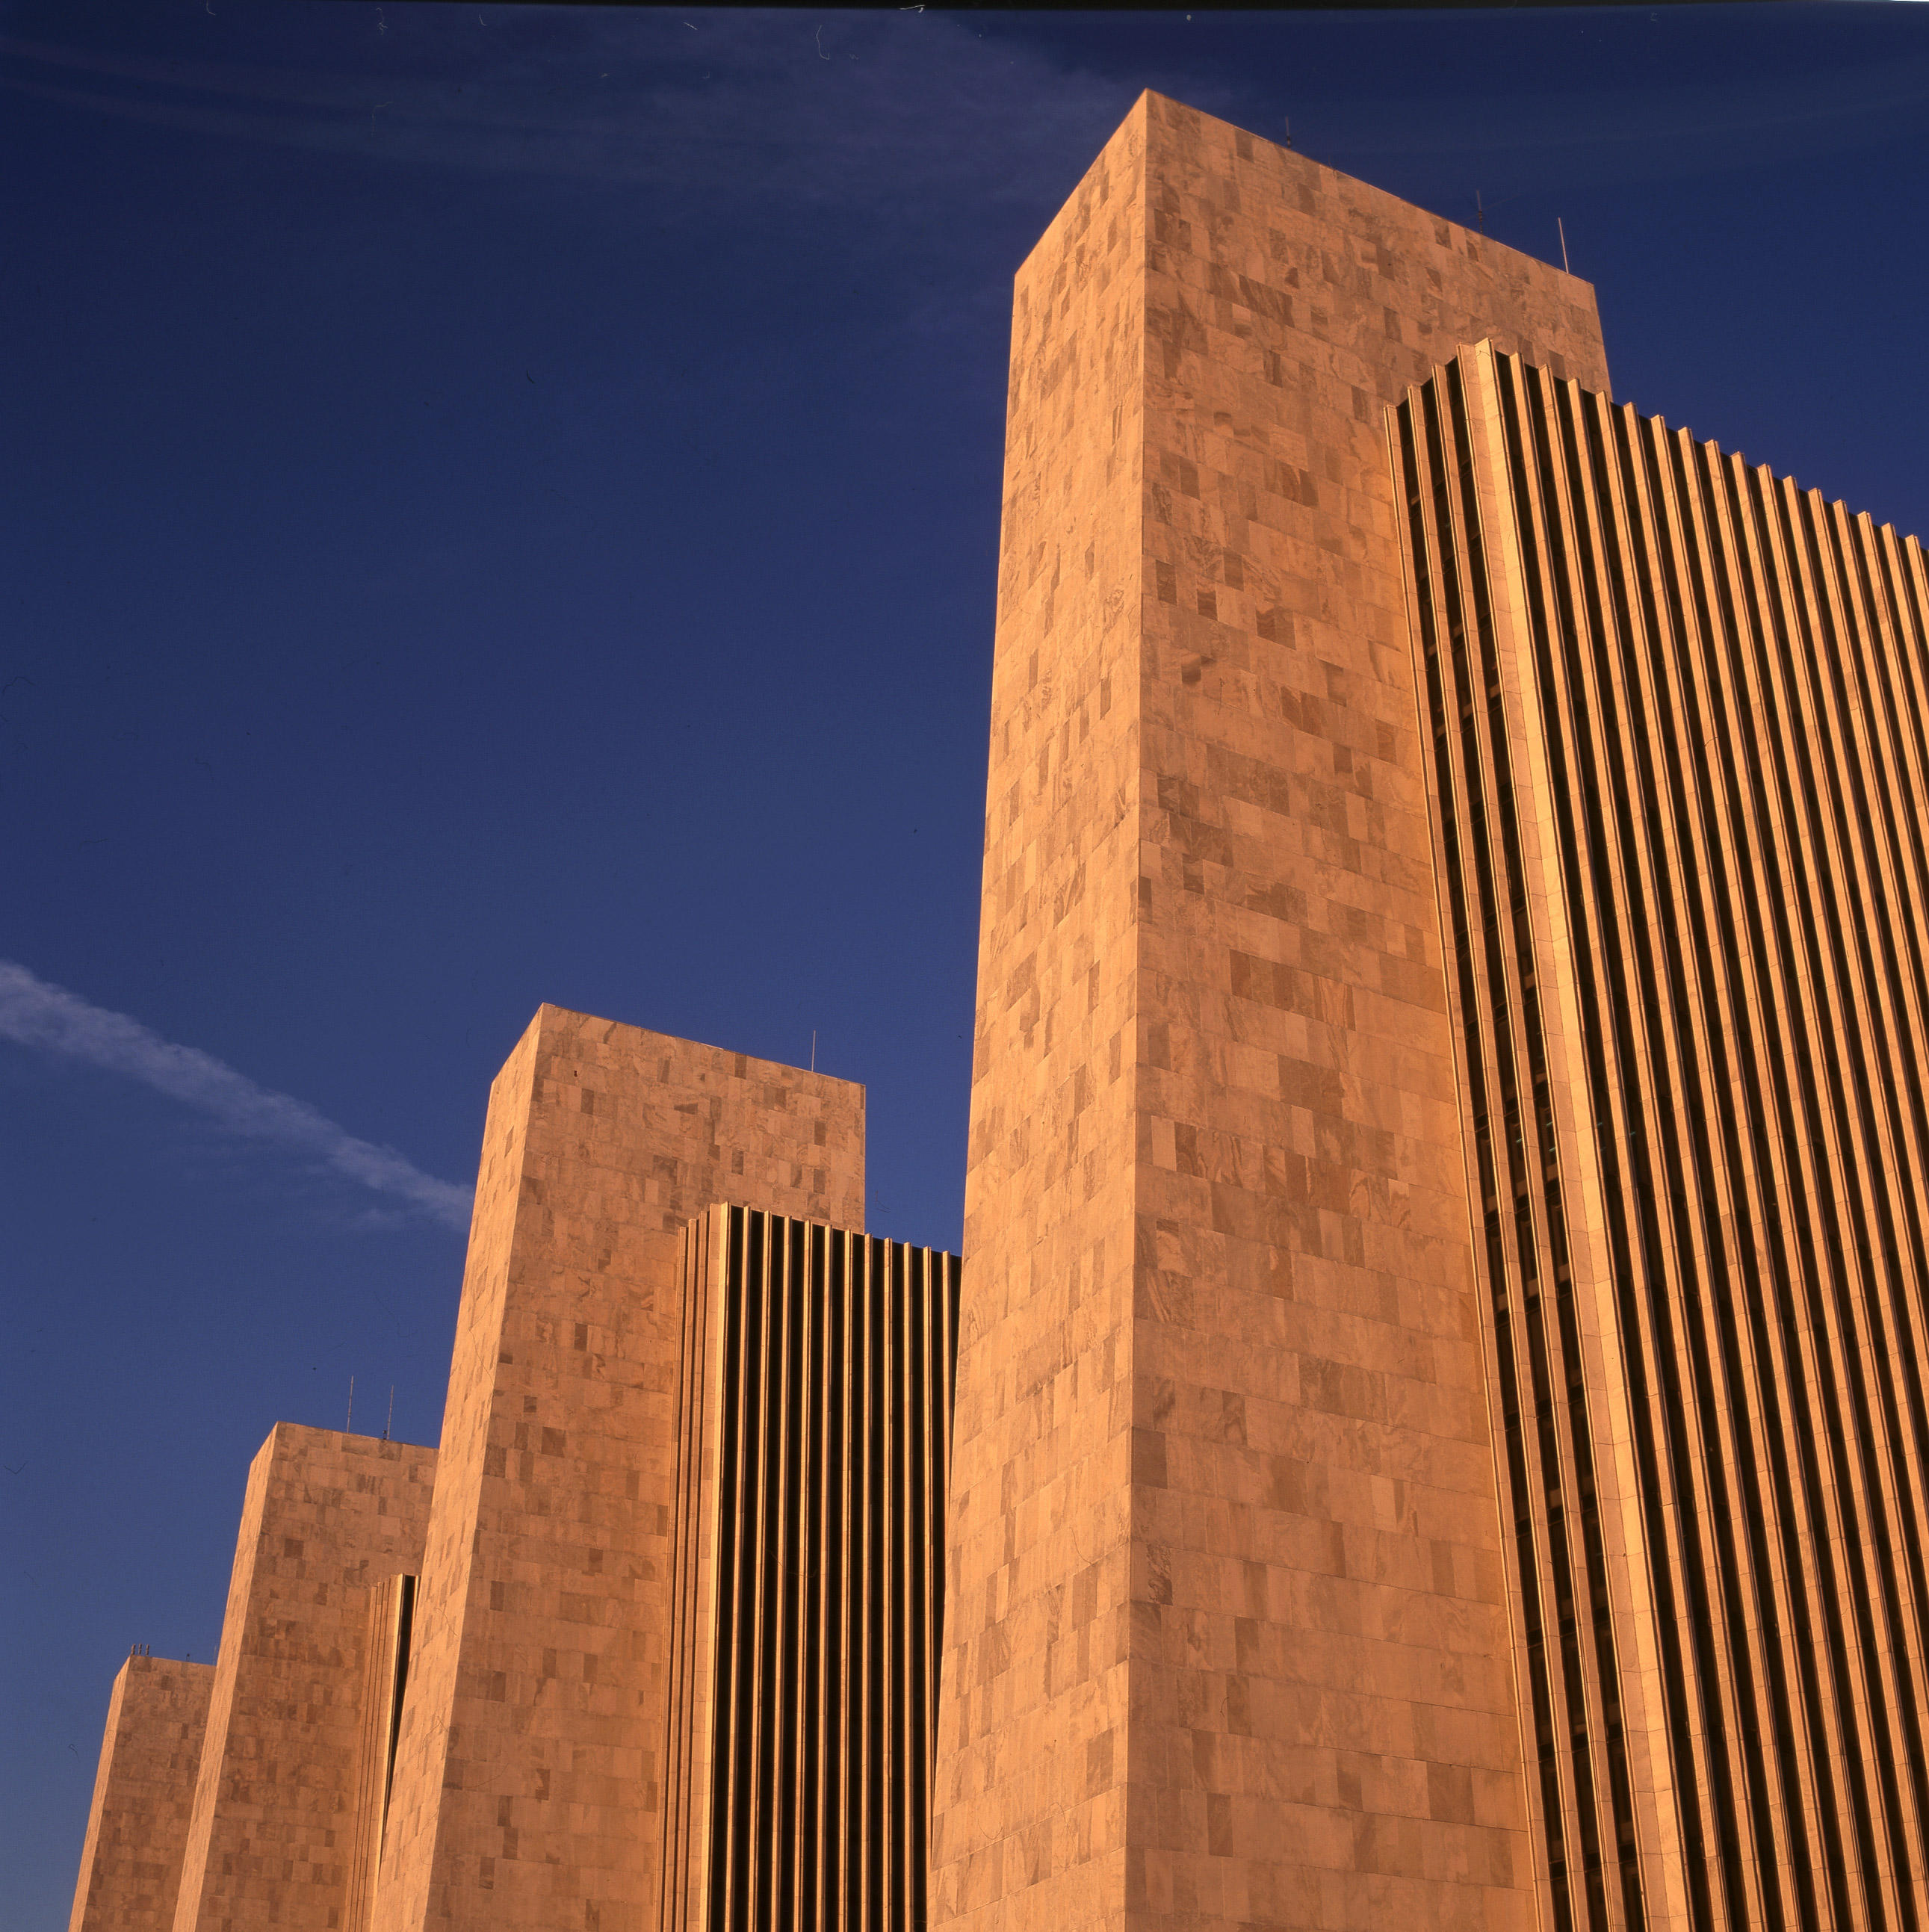 agency buildings rockefeller empire state plaza a hull ray